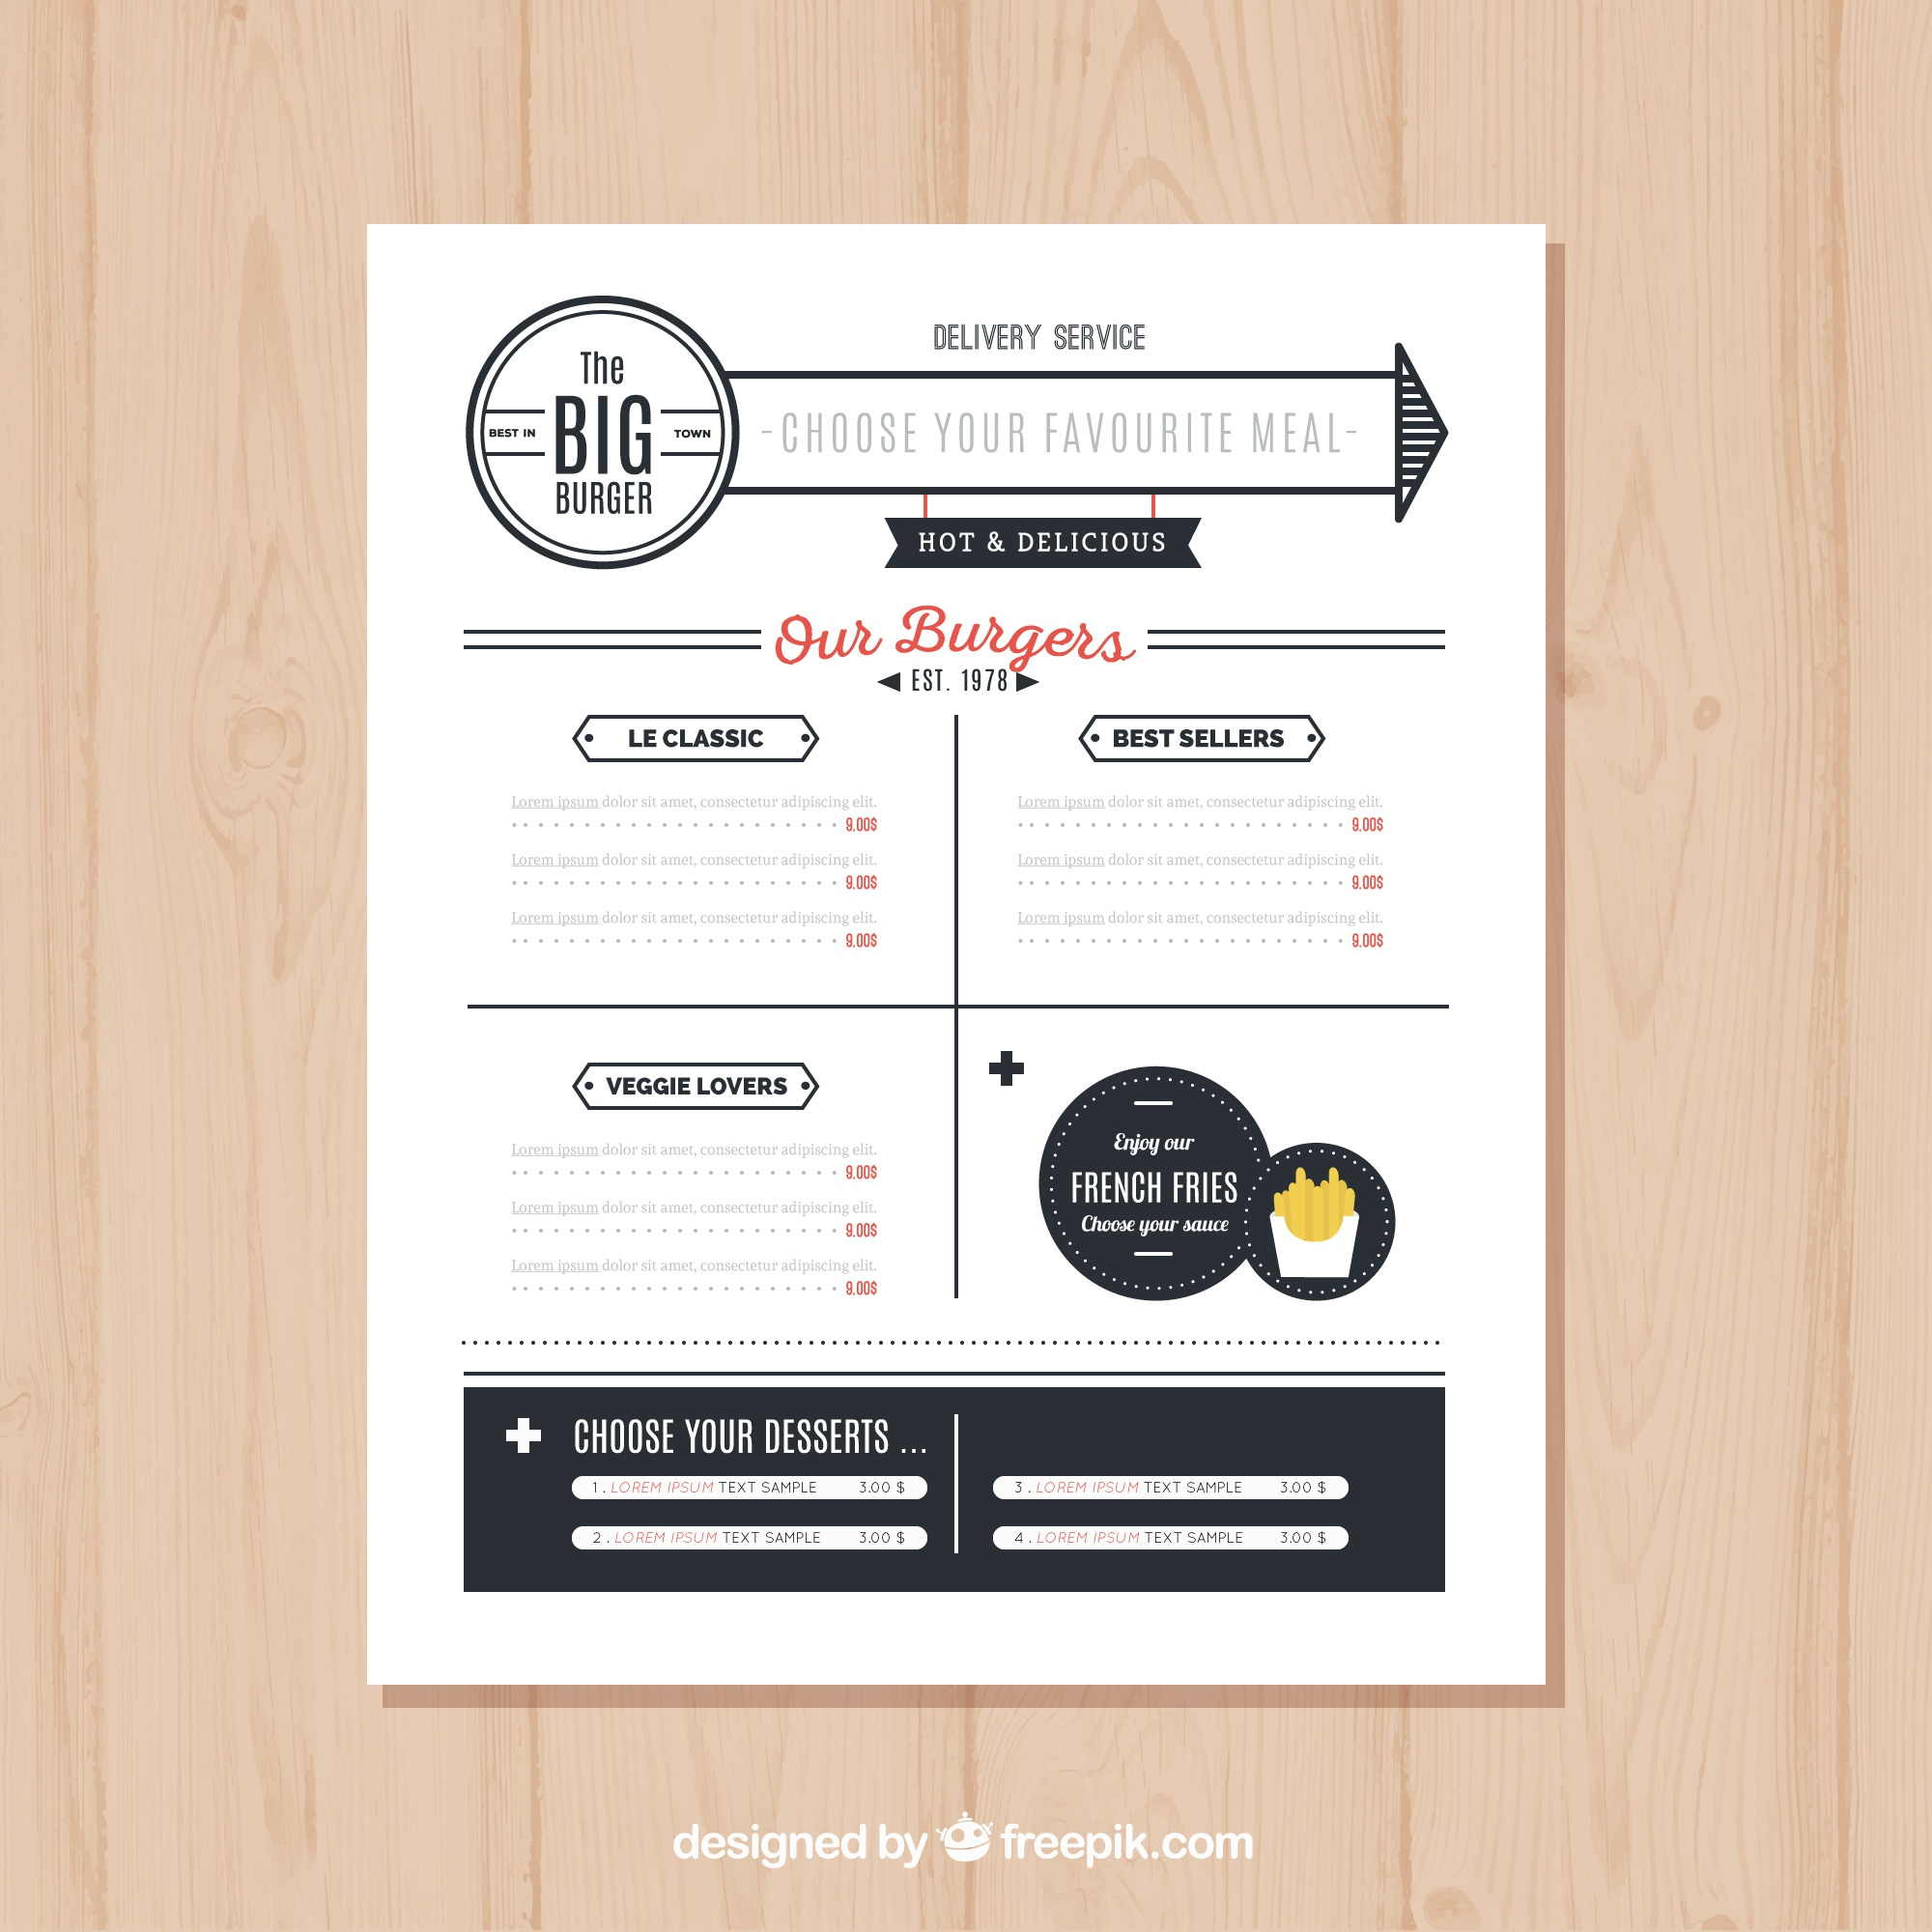 Burger menu template in minimalist style